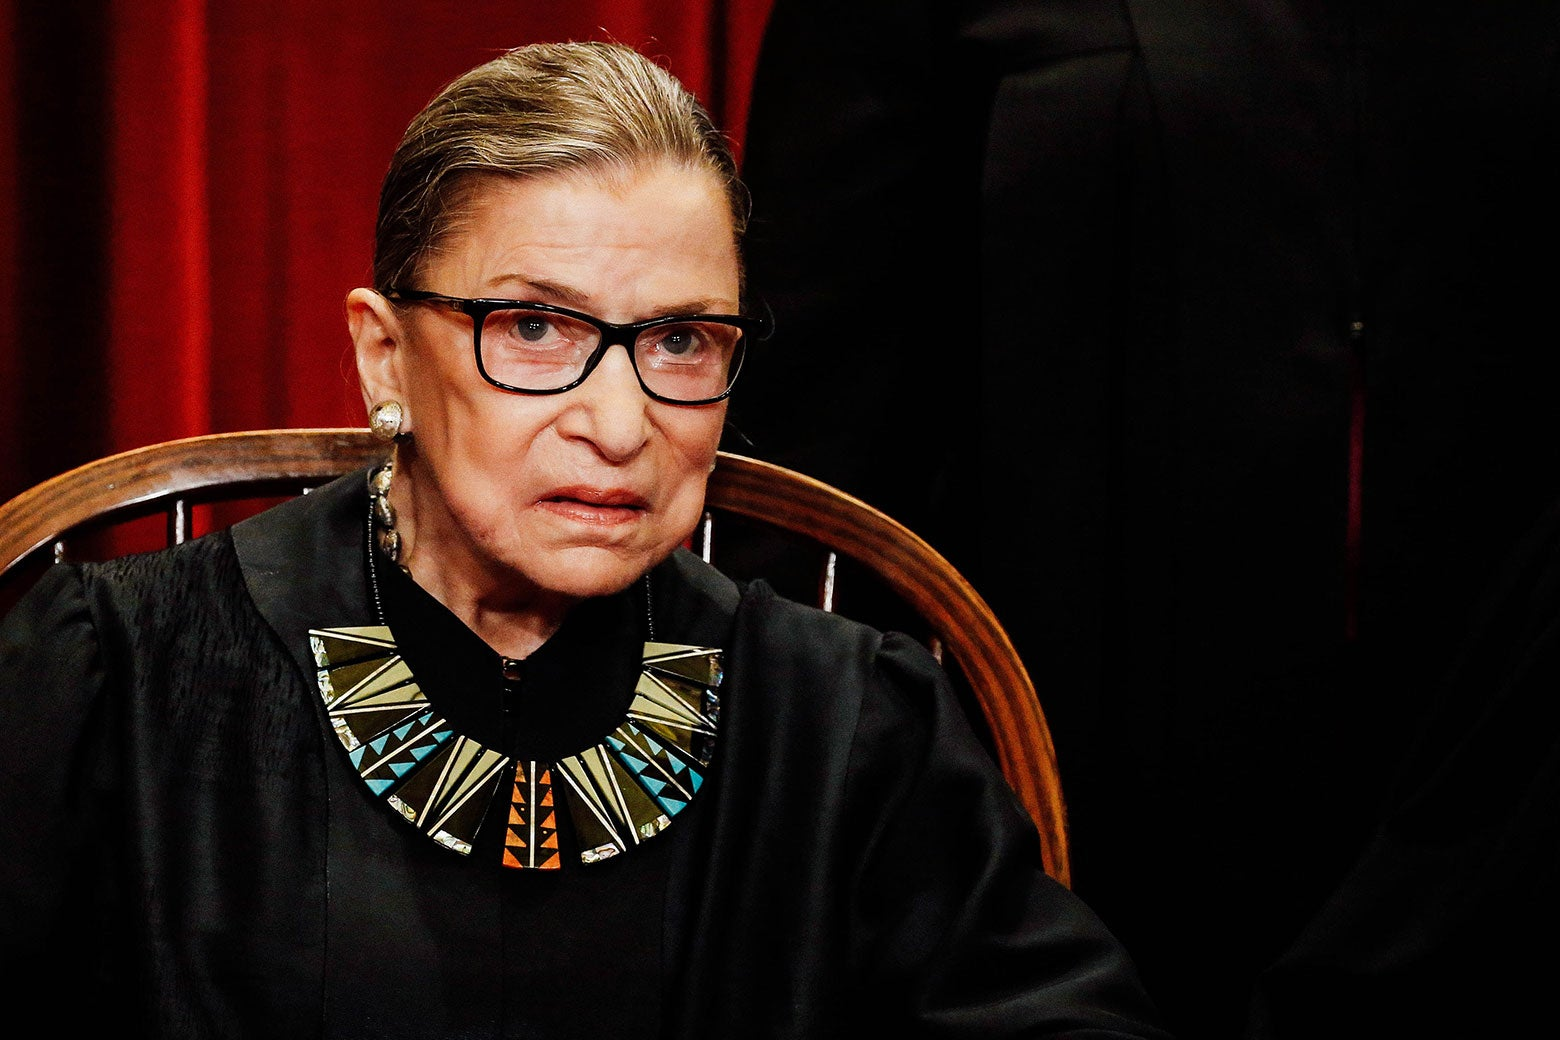 Justice Ruth Bader Ginsburg poses for a photo of the Supreme Court justices.